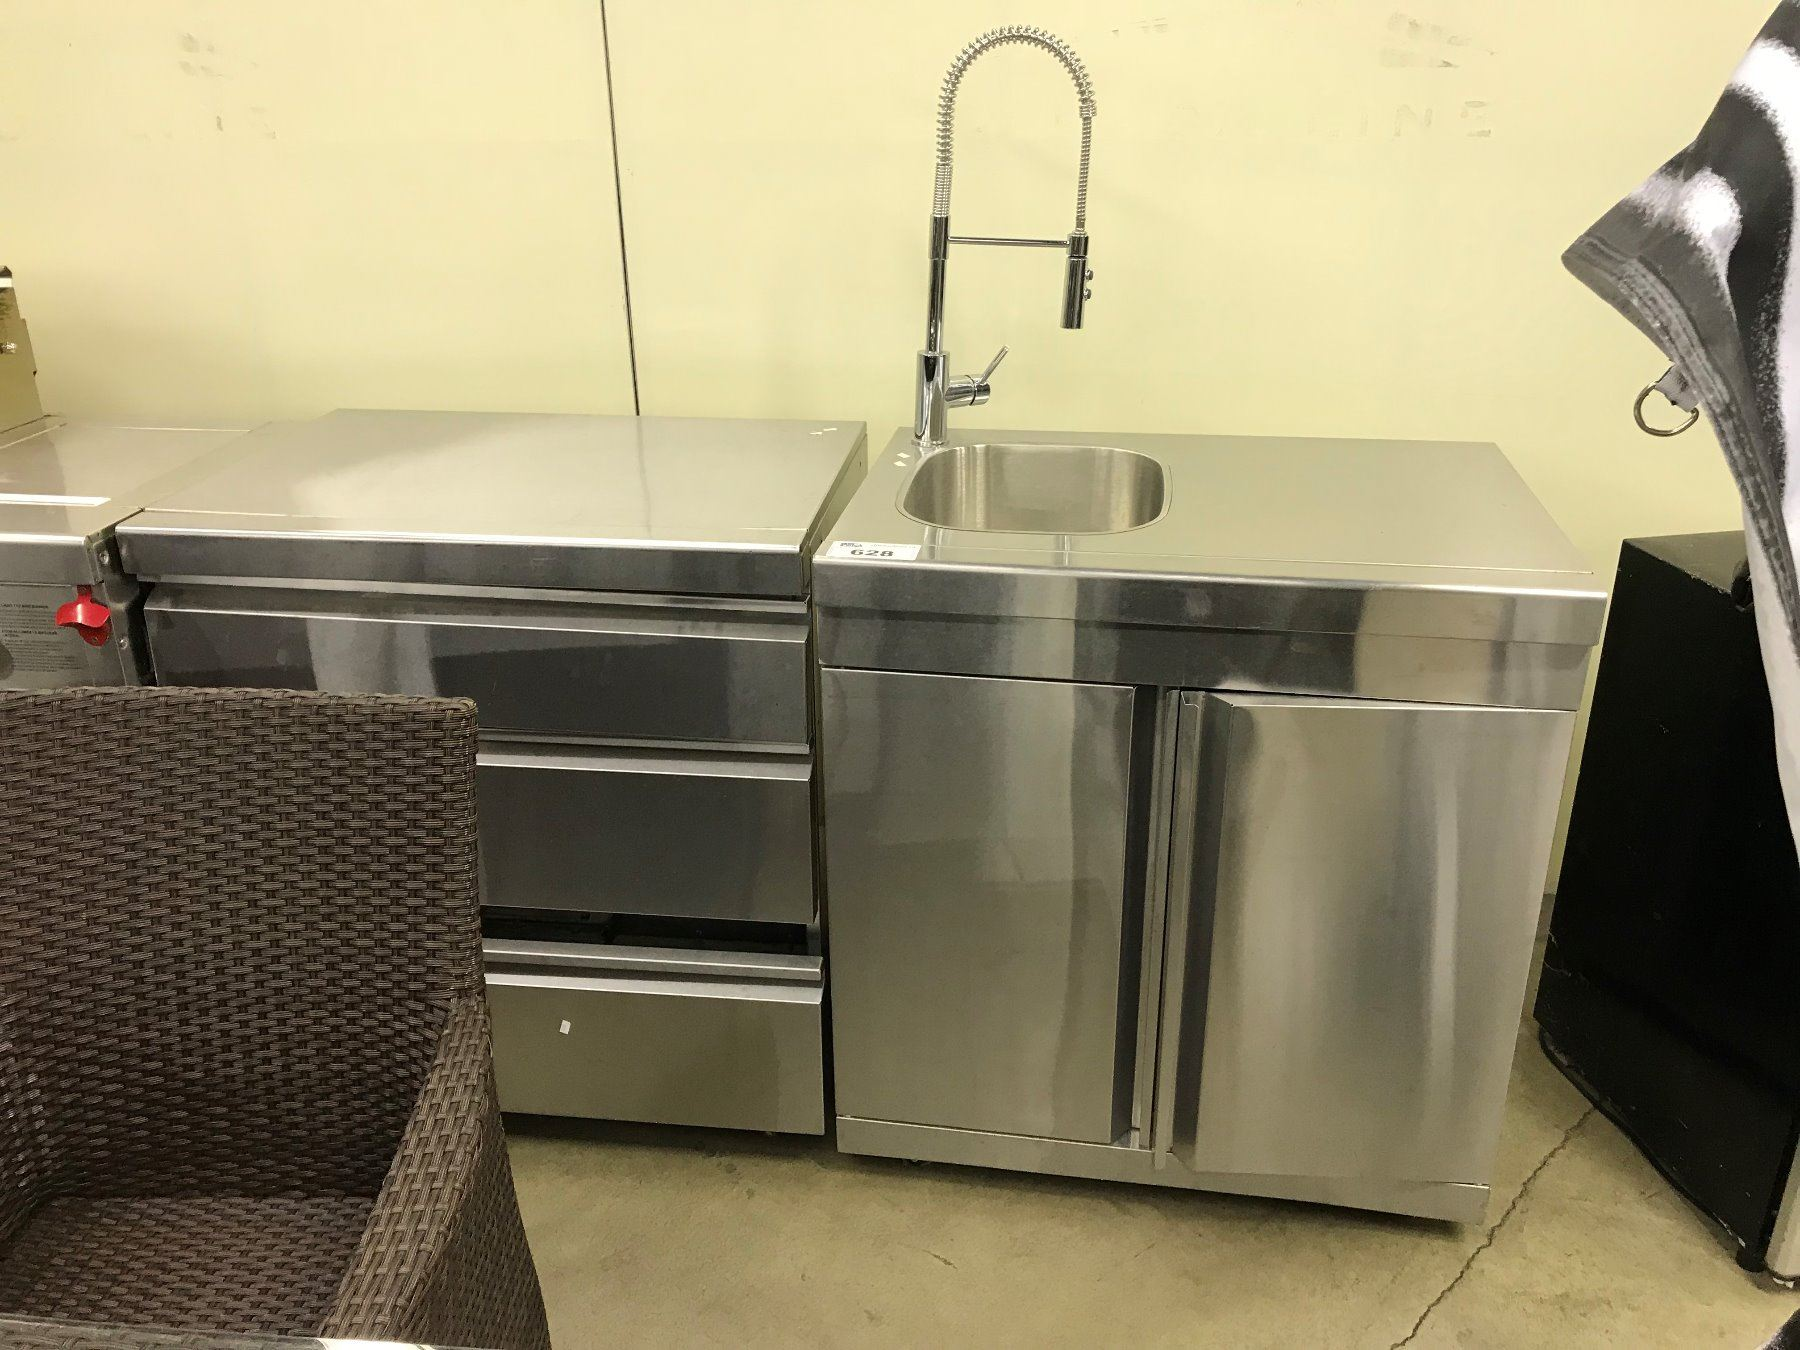 Peachy Lot Of Stainless Steel Commercial Kitchen Appliances Inc Sink Best Image Libraries Thycampuscom